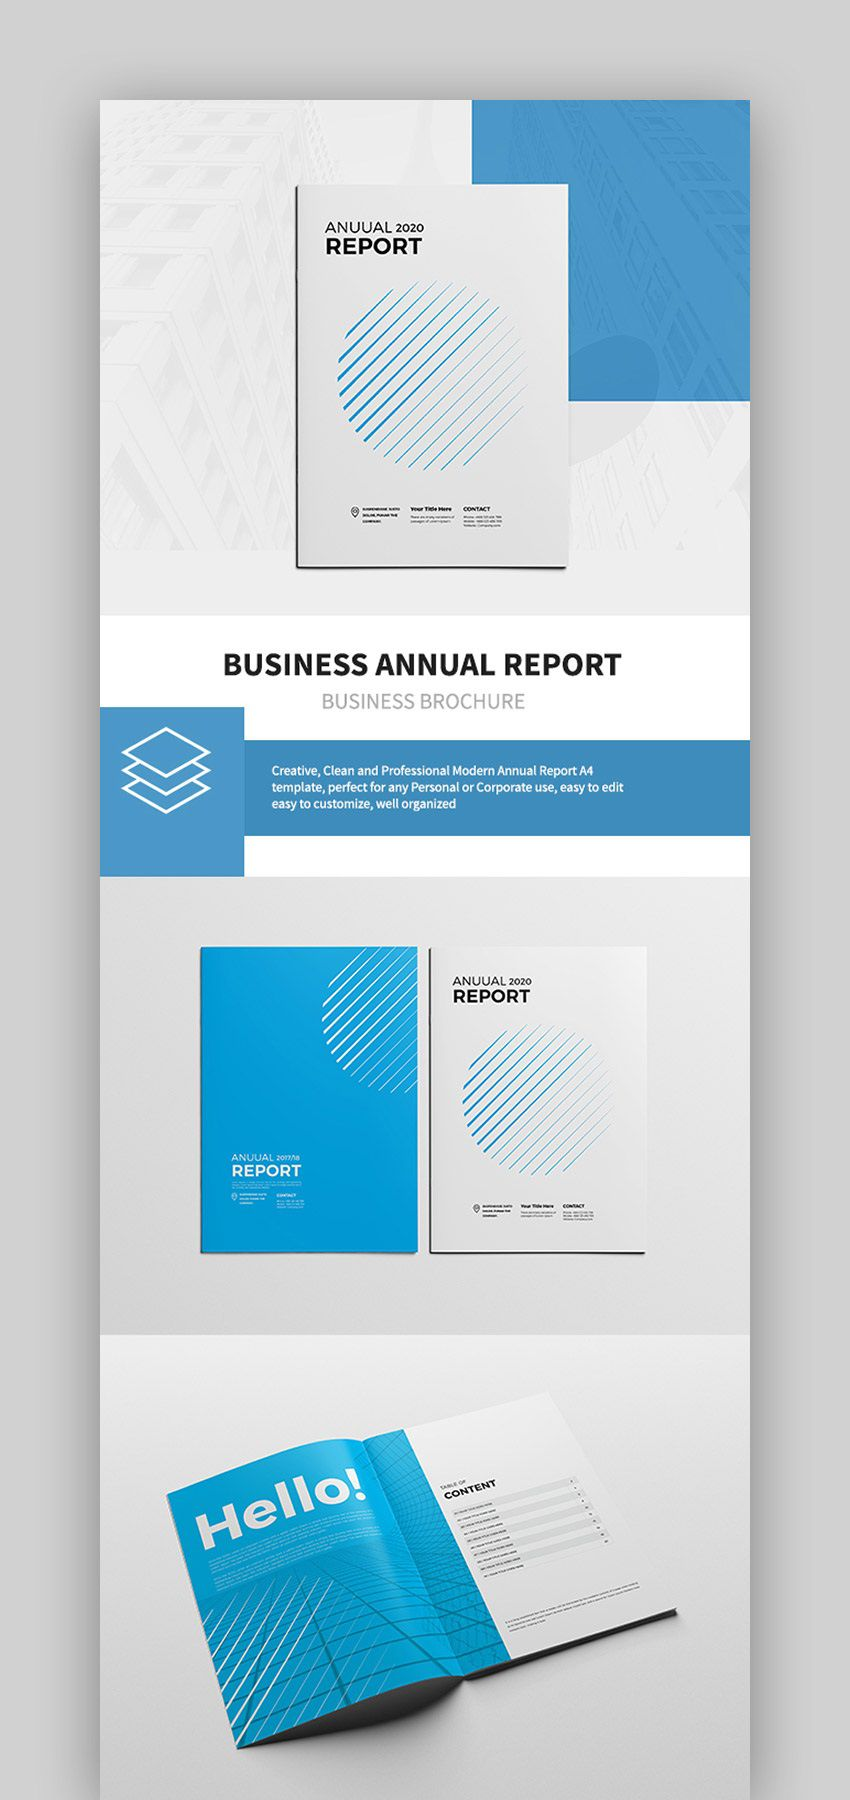 002 Stunning Free Adobe Indesign Annual Report Template High Resolution Full